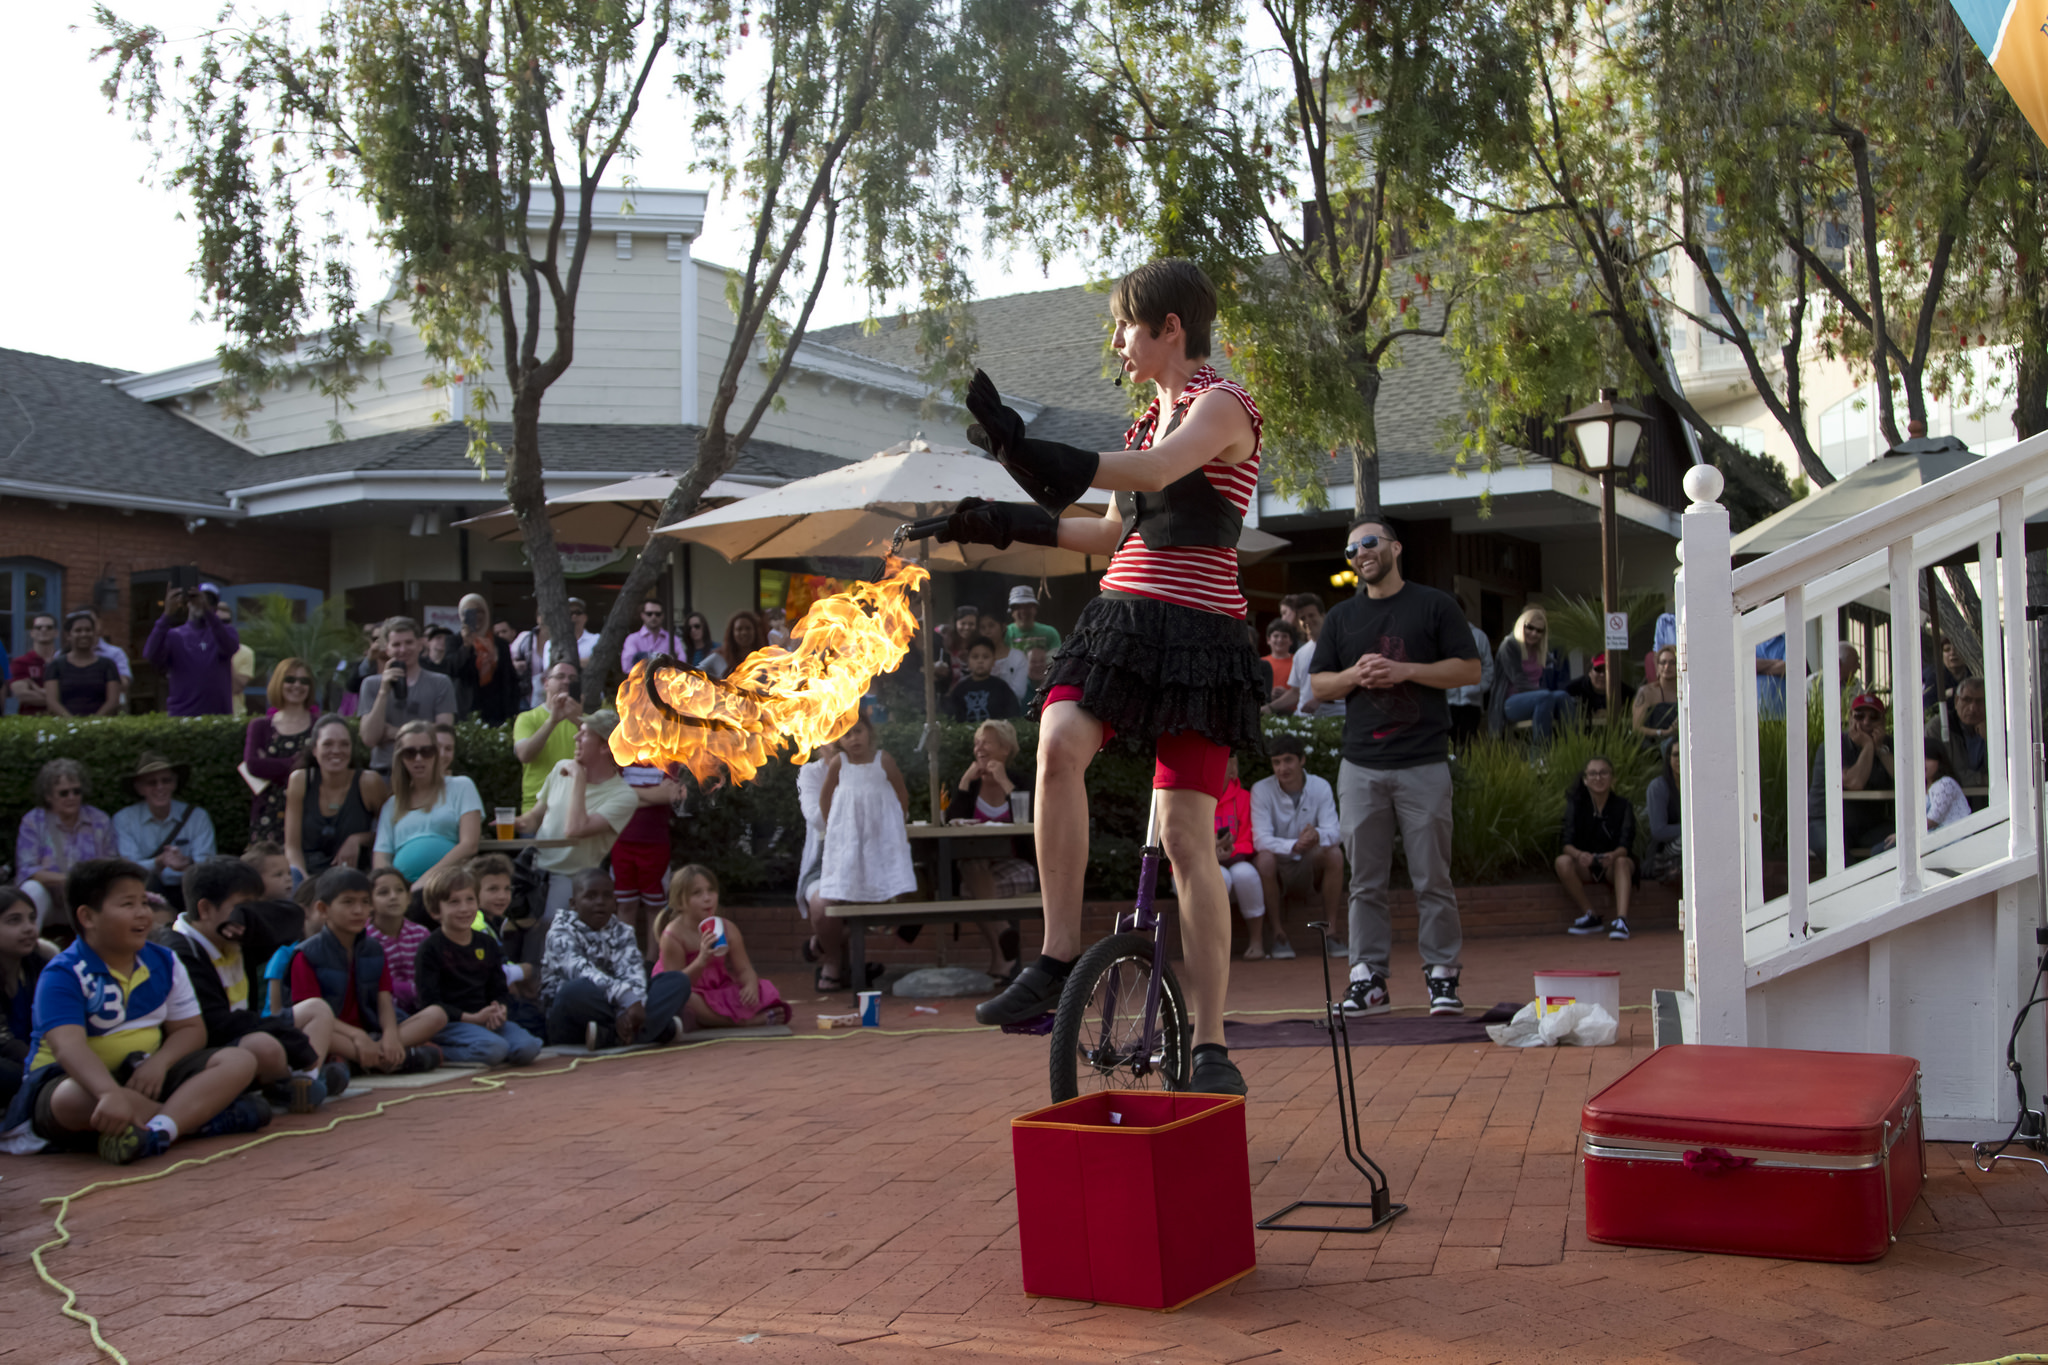 Spring Busker Festival - Top Things to Do